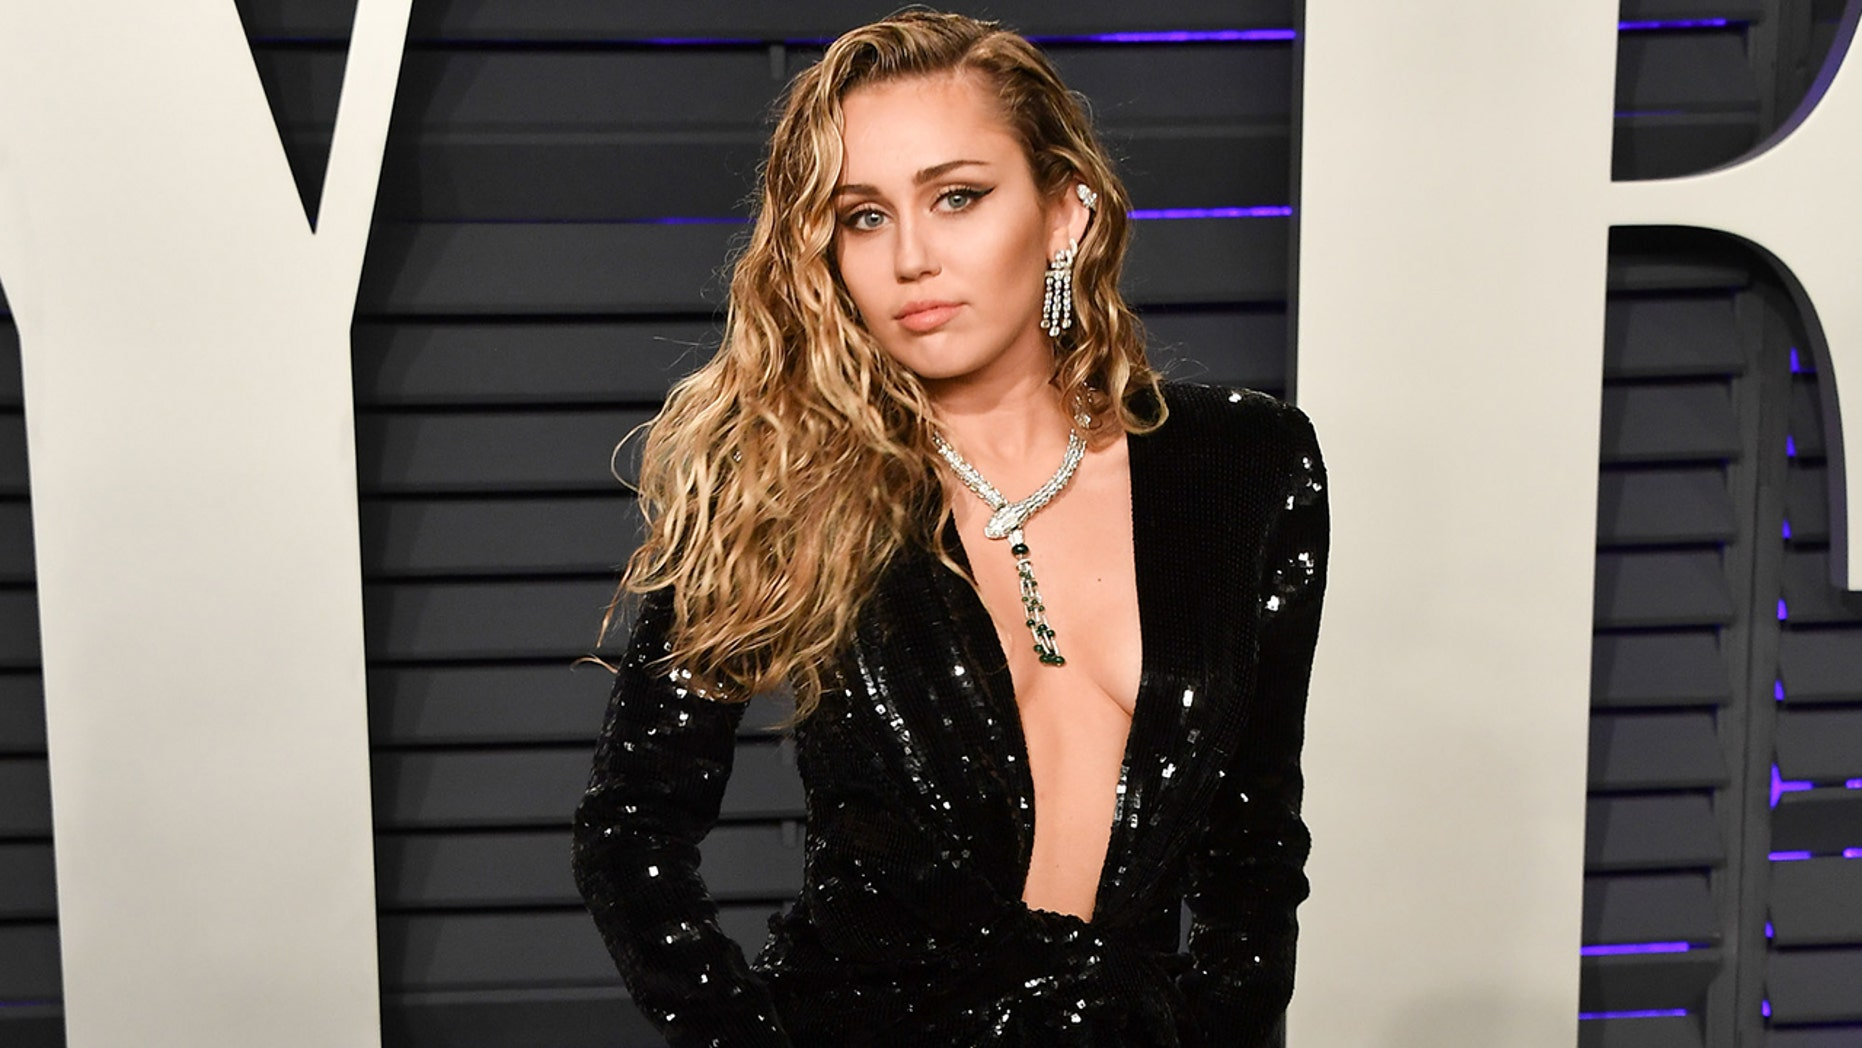 Miley Cyrus shared some fun throwbacks to celebrate the anniversary of 'Hannah Montana.'